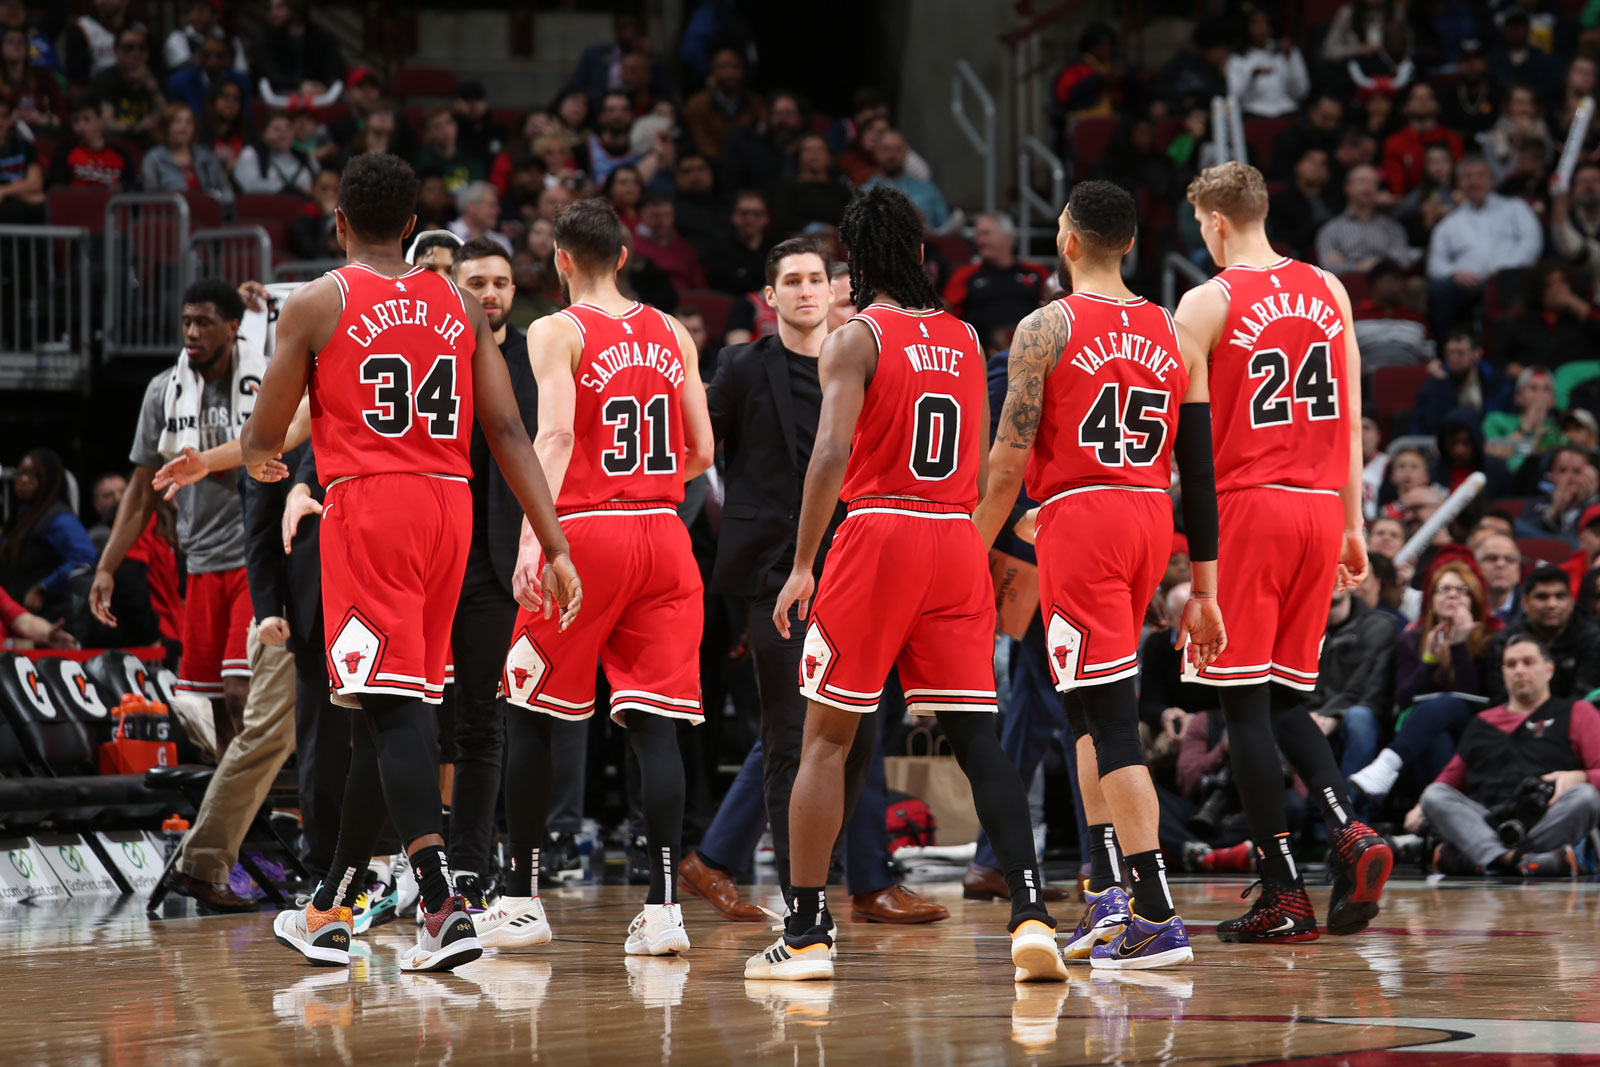 The Chicago Bulls huddle up prior to a game against the Cleveland Cavaliers on March 10, 2020 at the United Center in Chicago, Illinois.